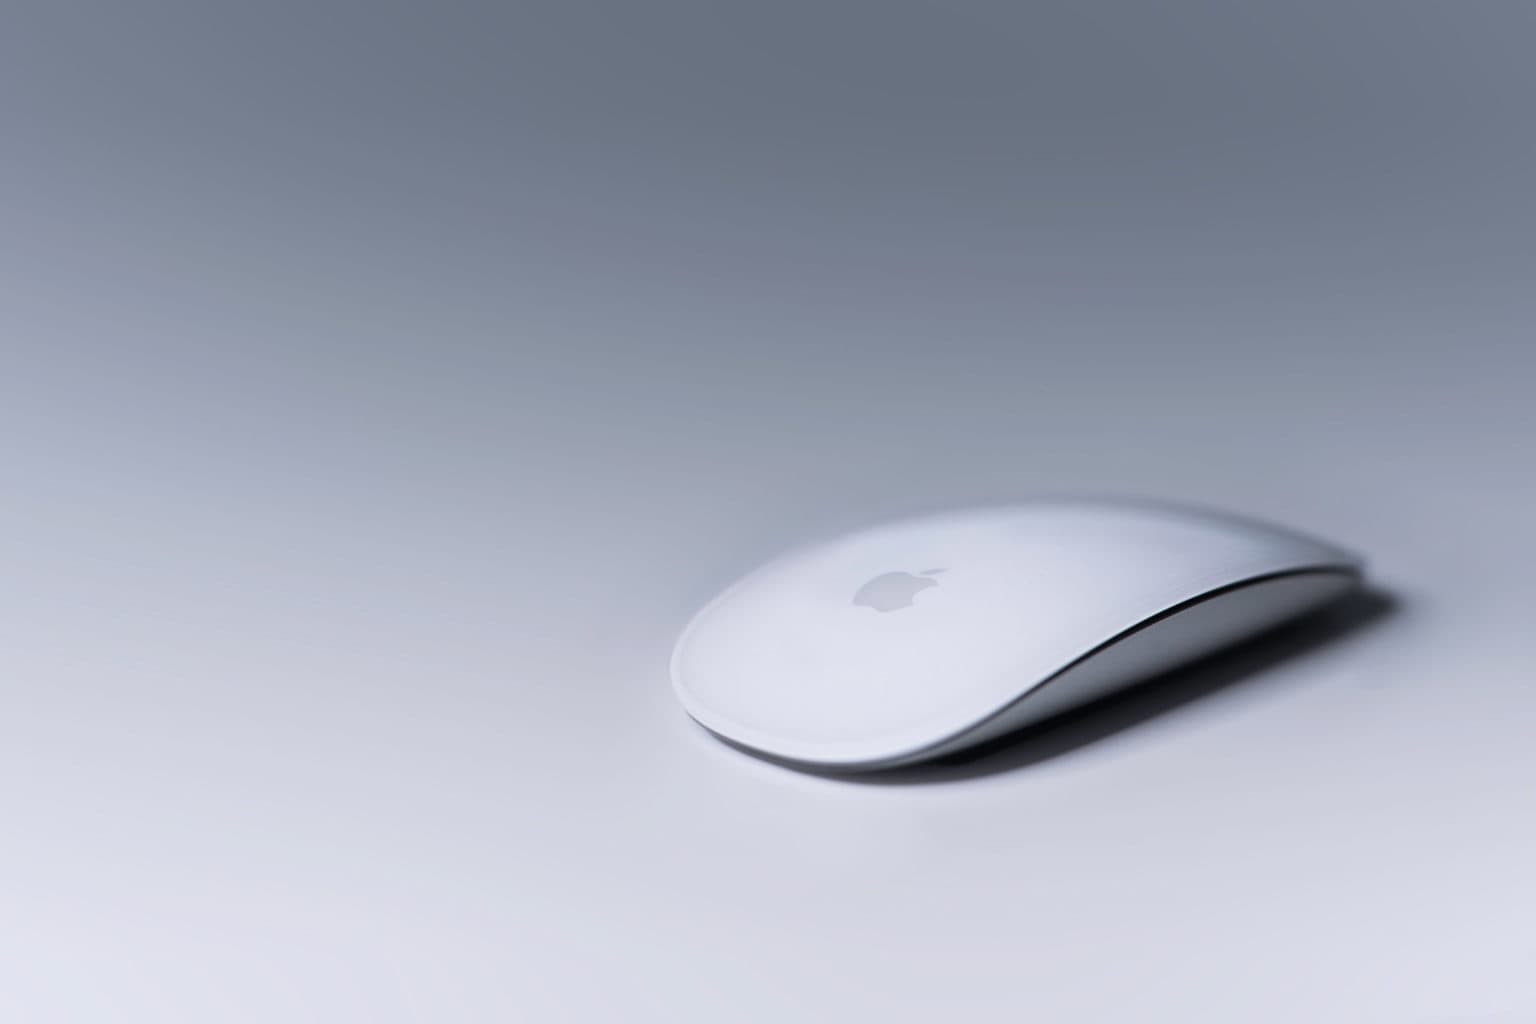 Even the Magic Mouse combines touch, drag and drop better than the iPad.